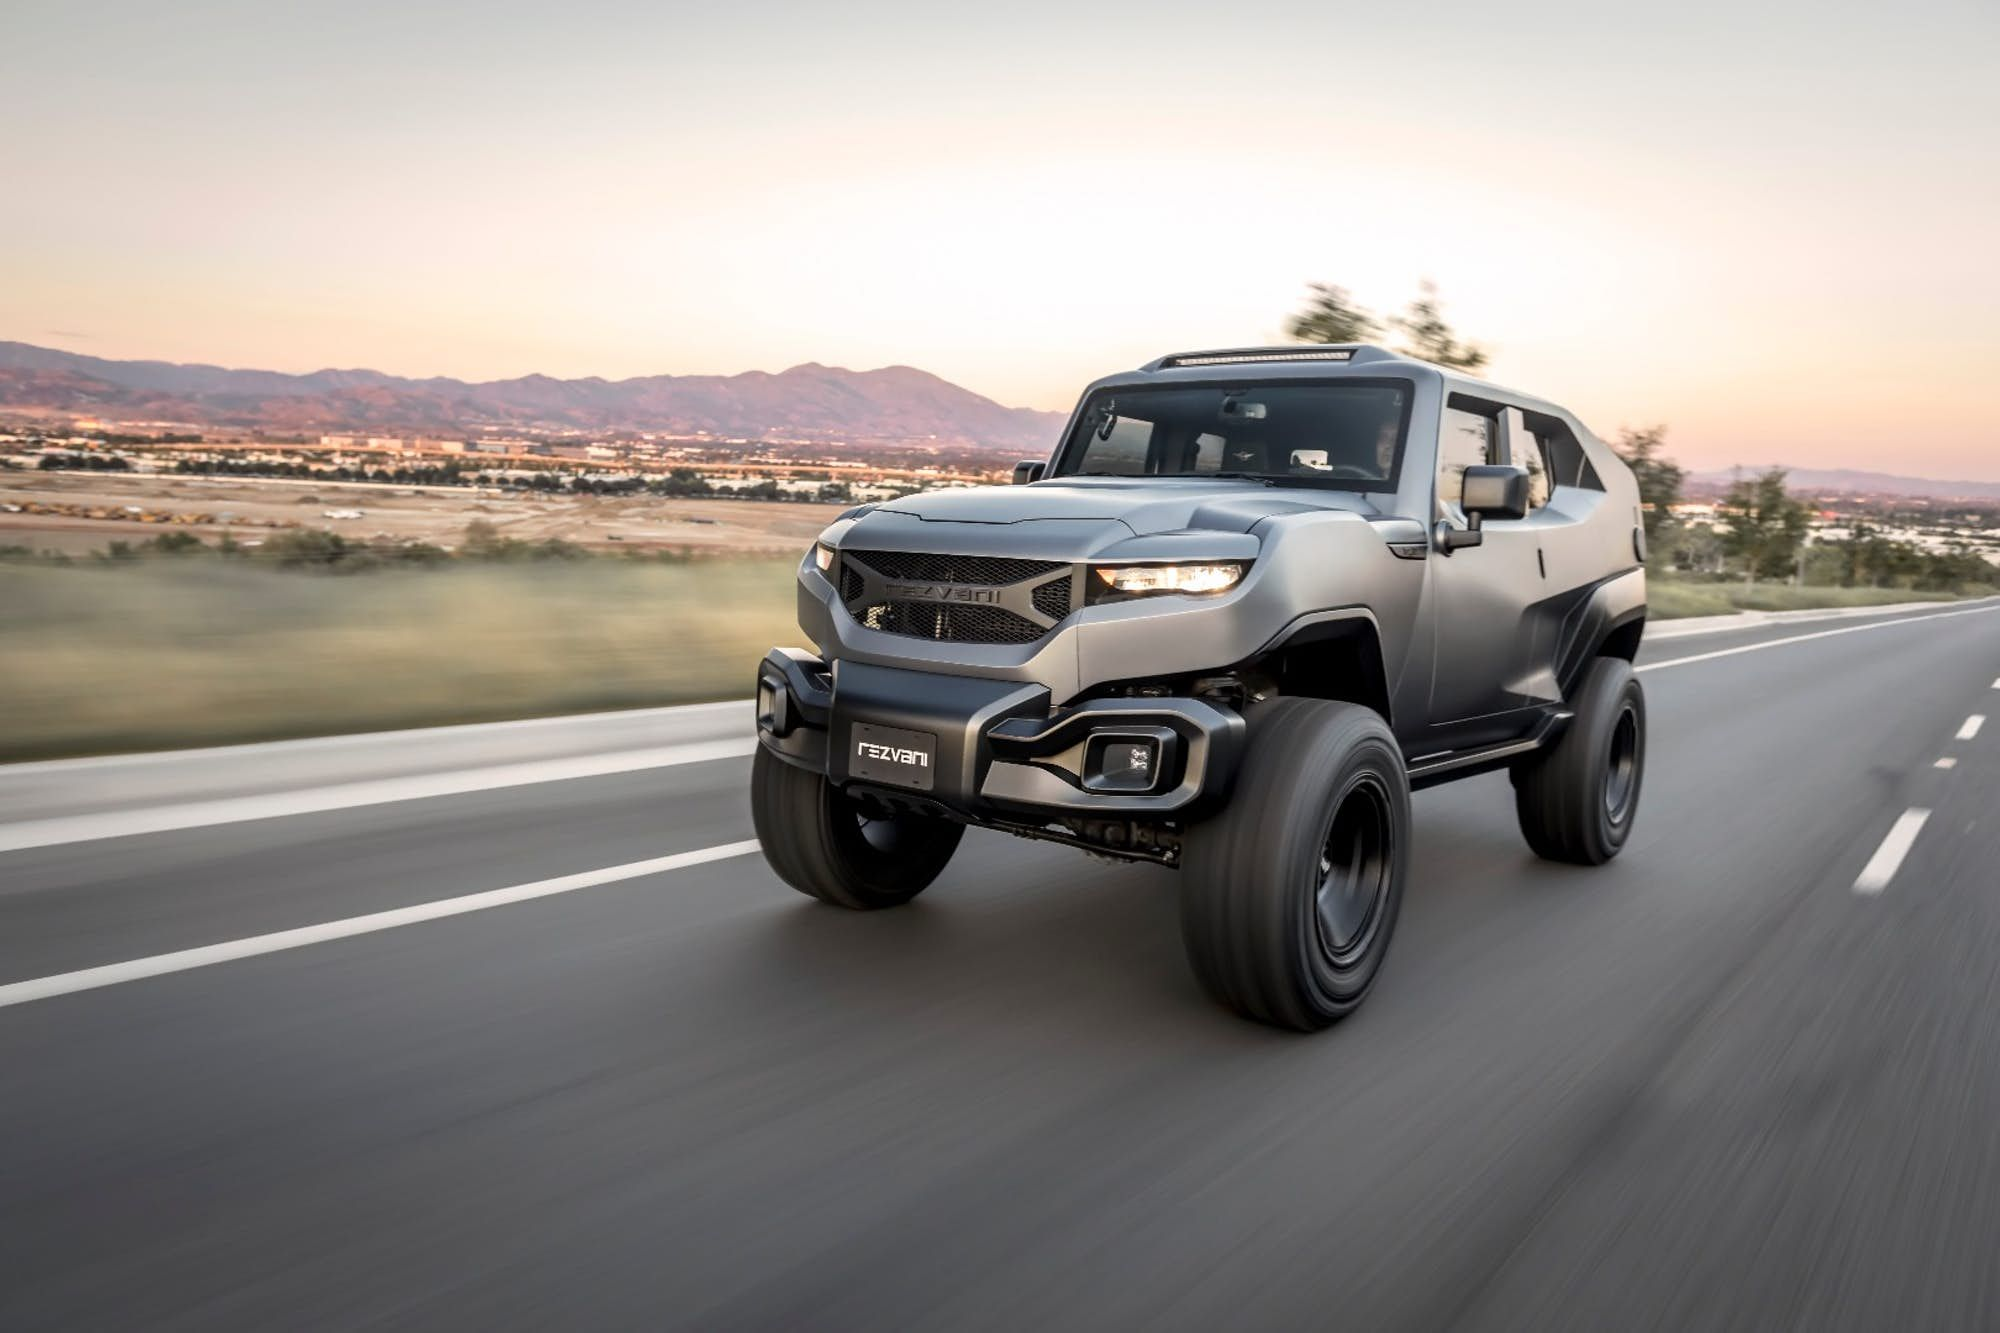 Rezvani Rallies A Very Select Set Of Troops With The Wrangler Based Tank 4x4 With Images Car 500 Cars New Jeep Wrangler